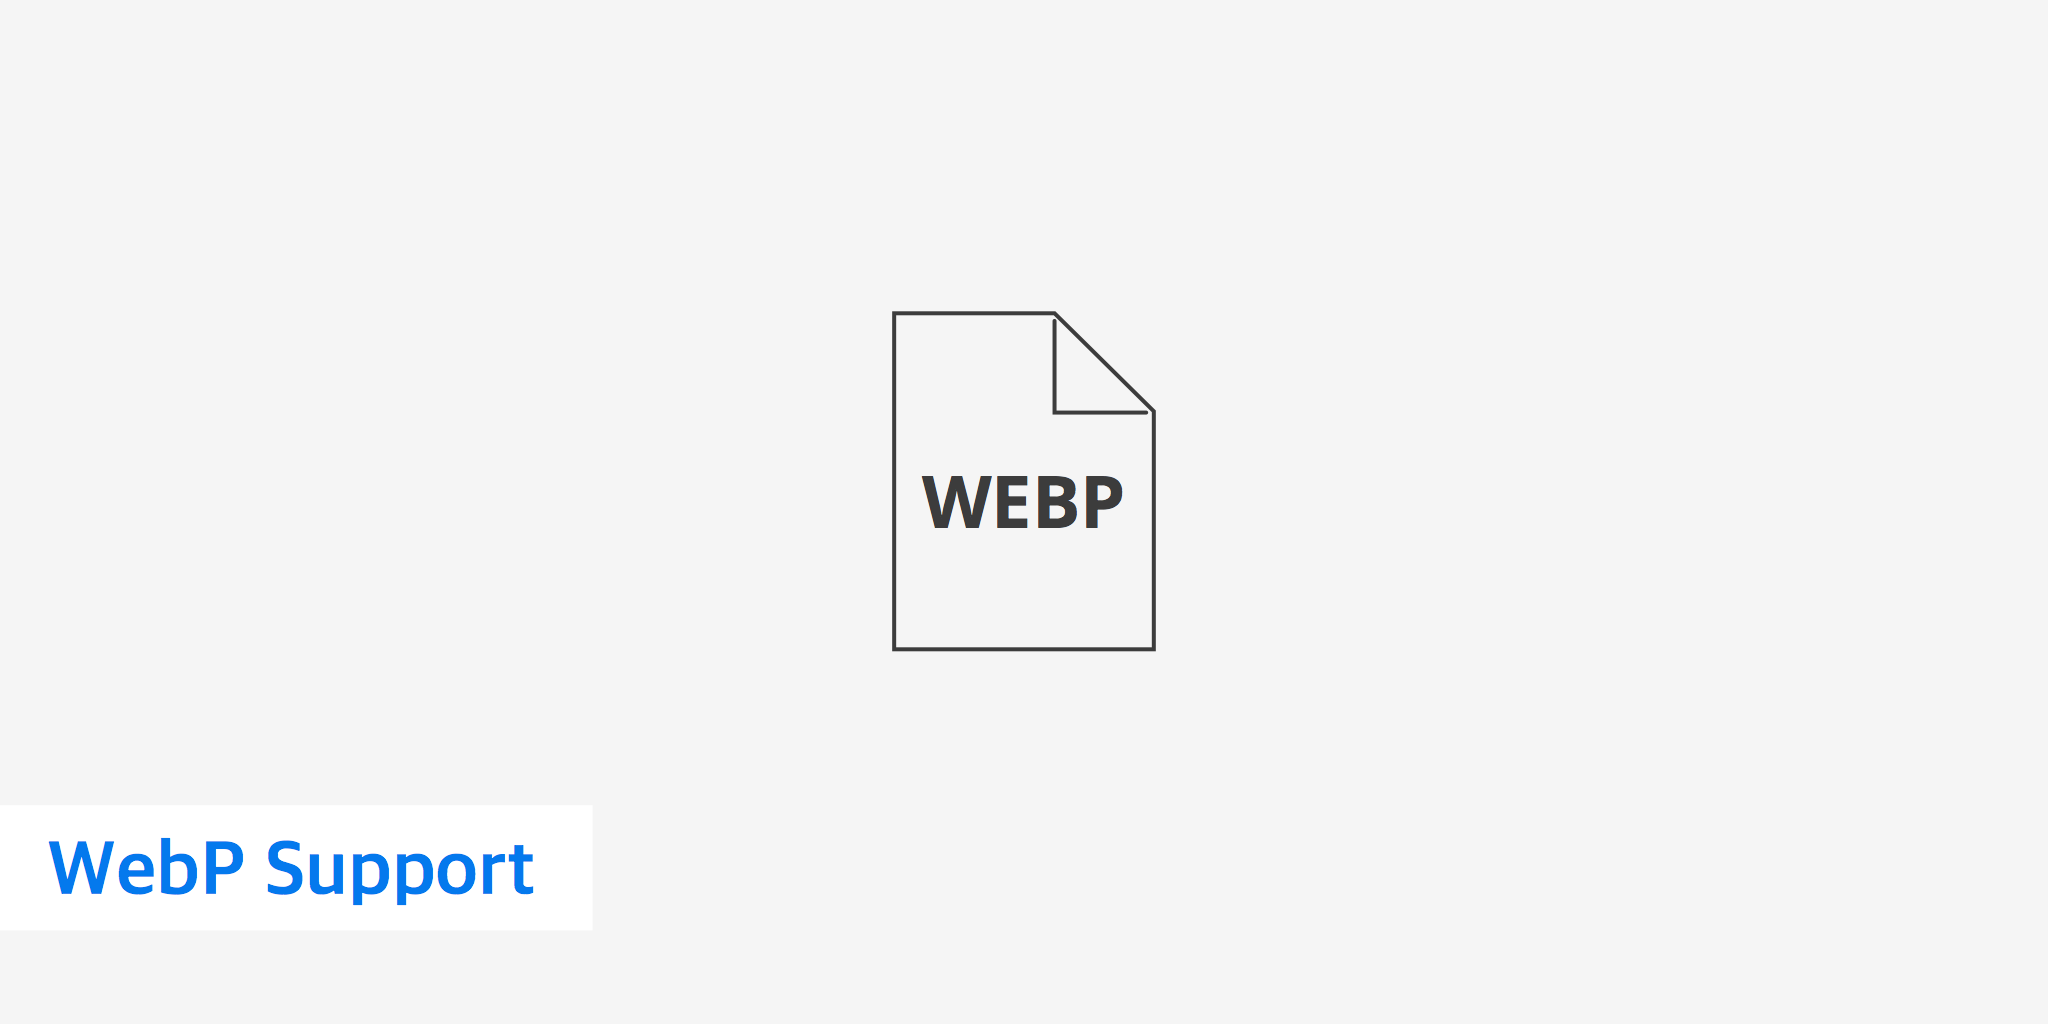 WebP Support - It's More Than You Think